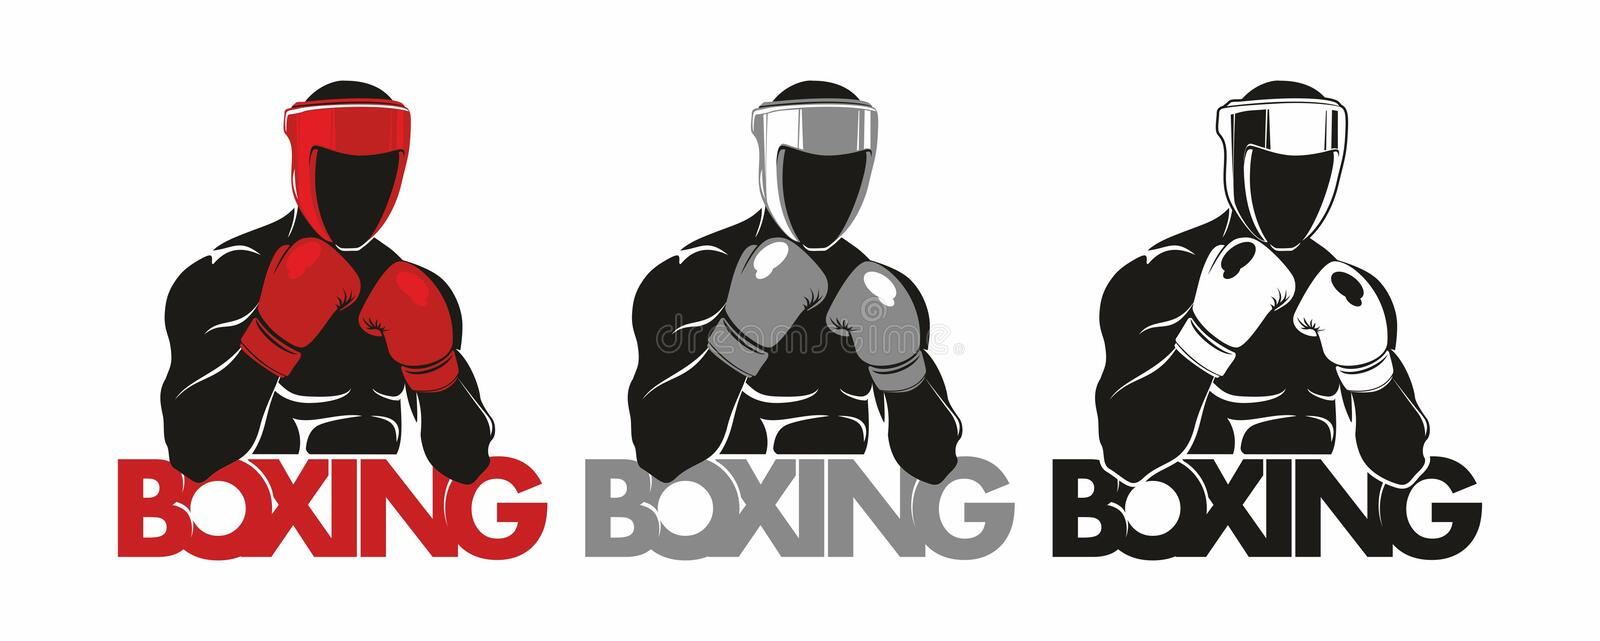 Boxing logo. Boxing Club Logo. Man in boxing gloves vector illustration